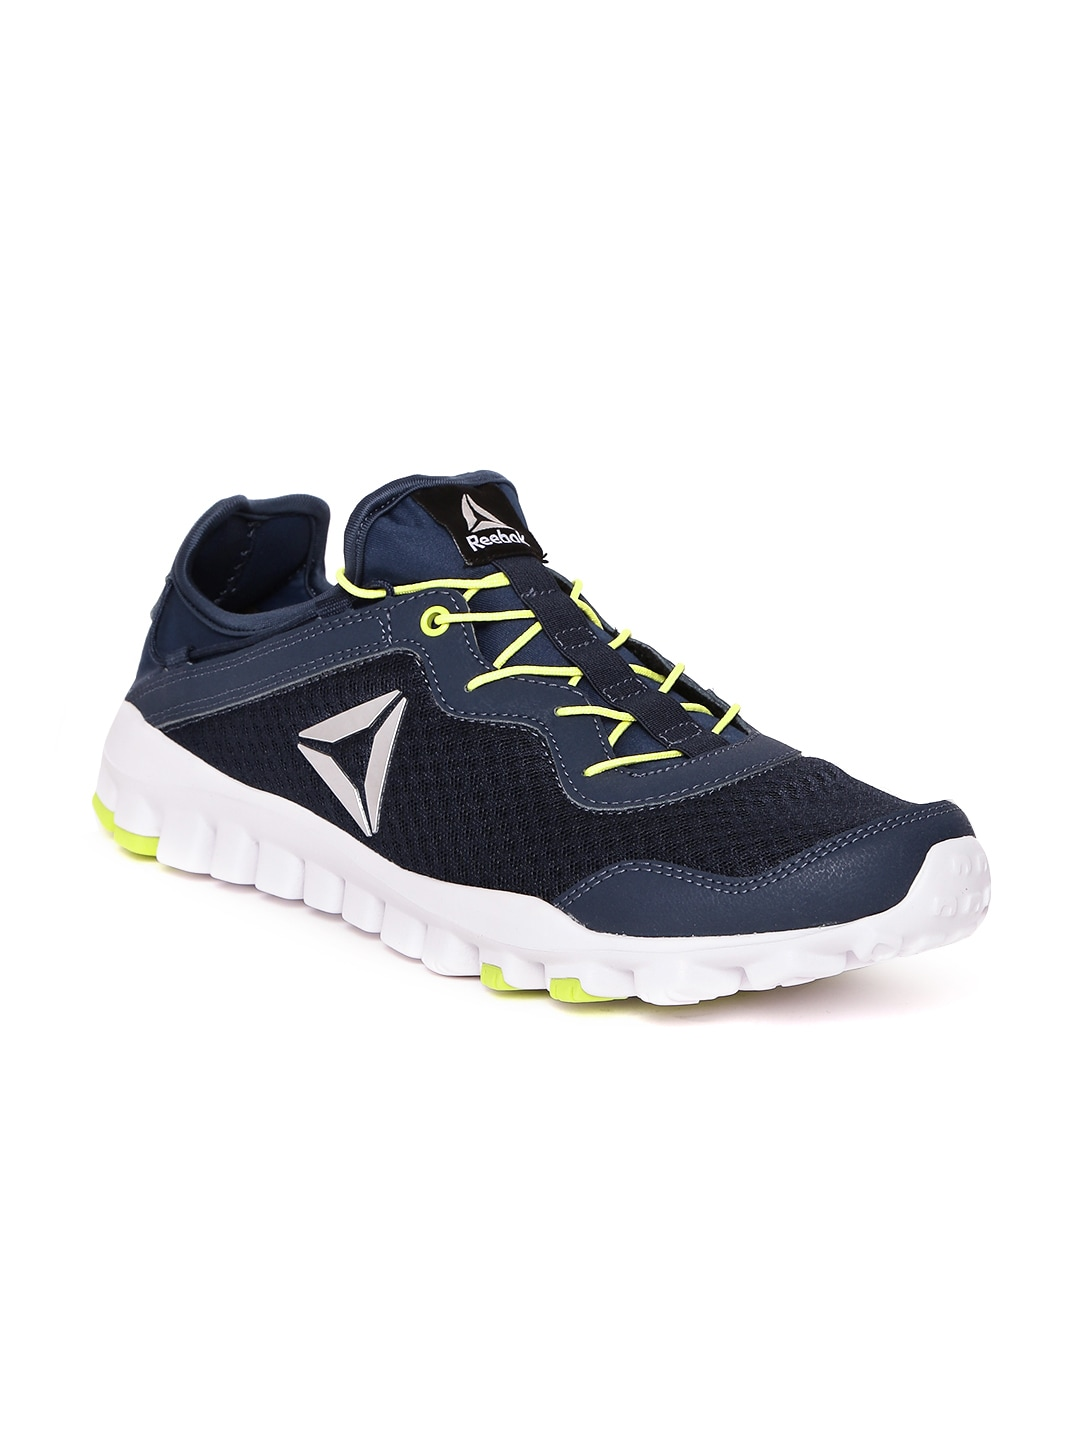 719059c12f75b Sports Shoes for Men - Buy Men Sports Shoes Online in India - Myntra